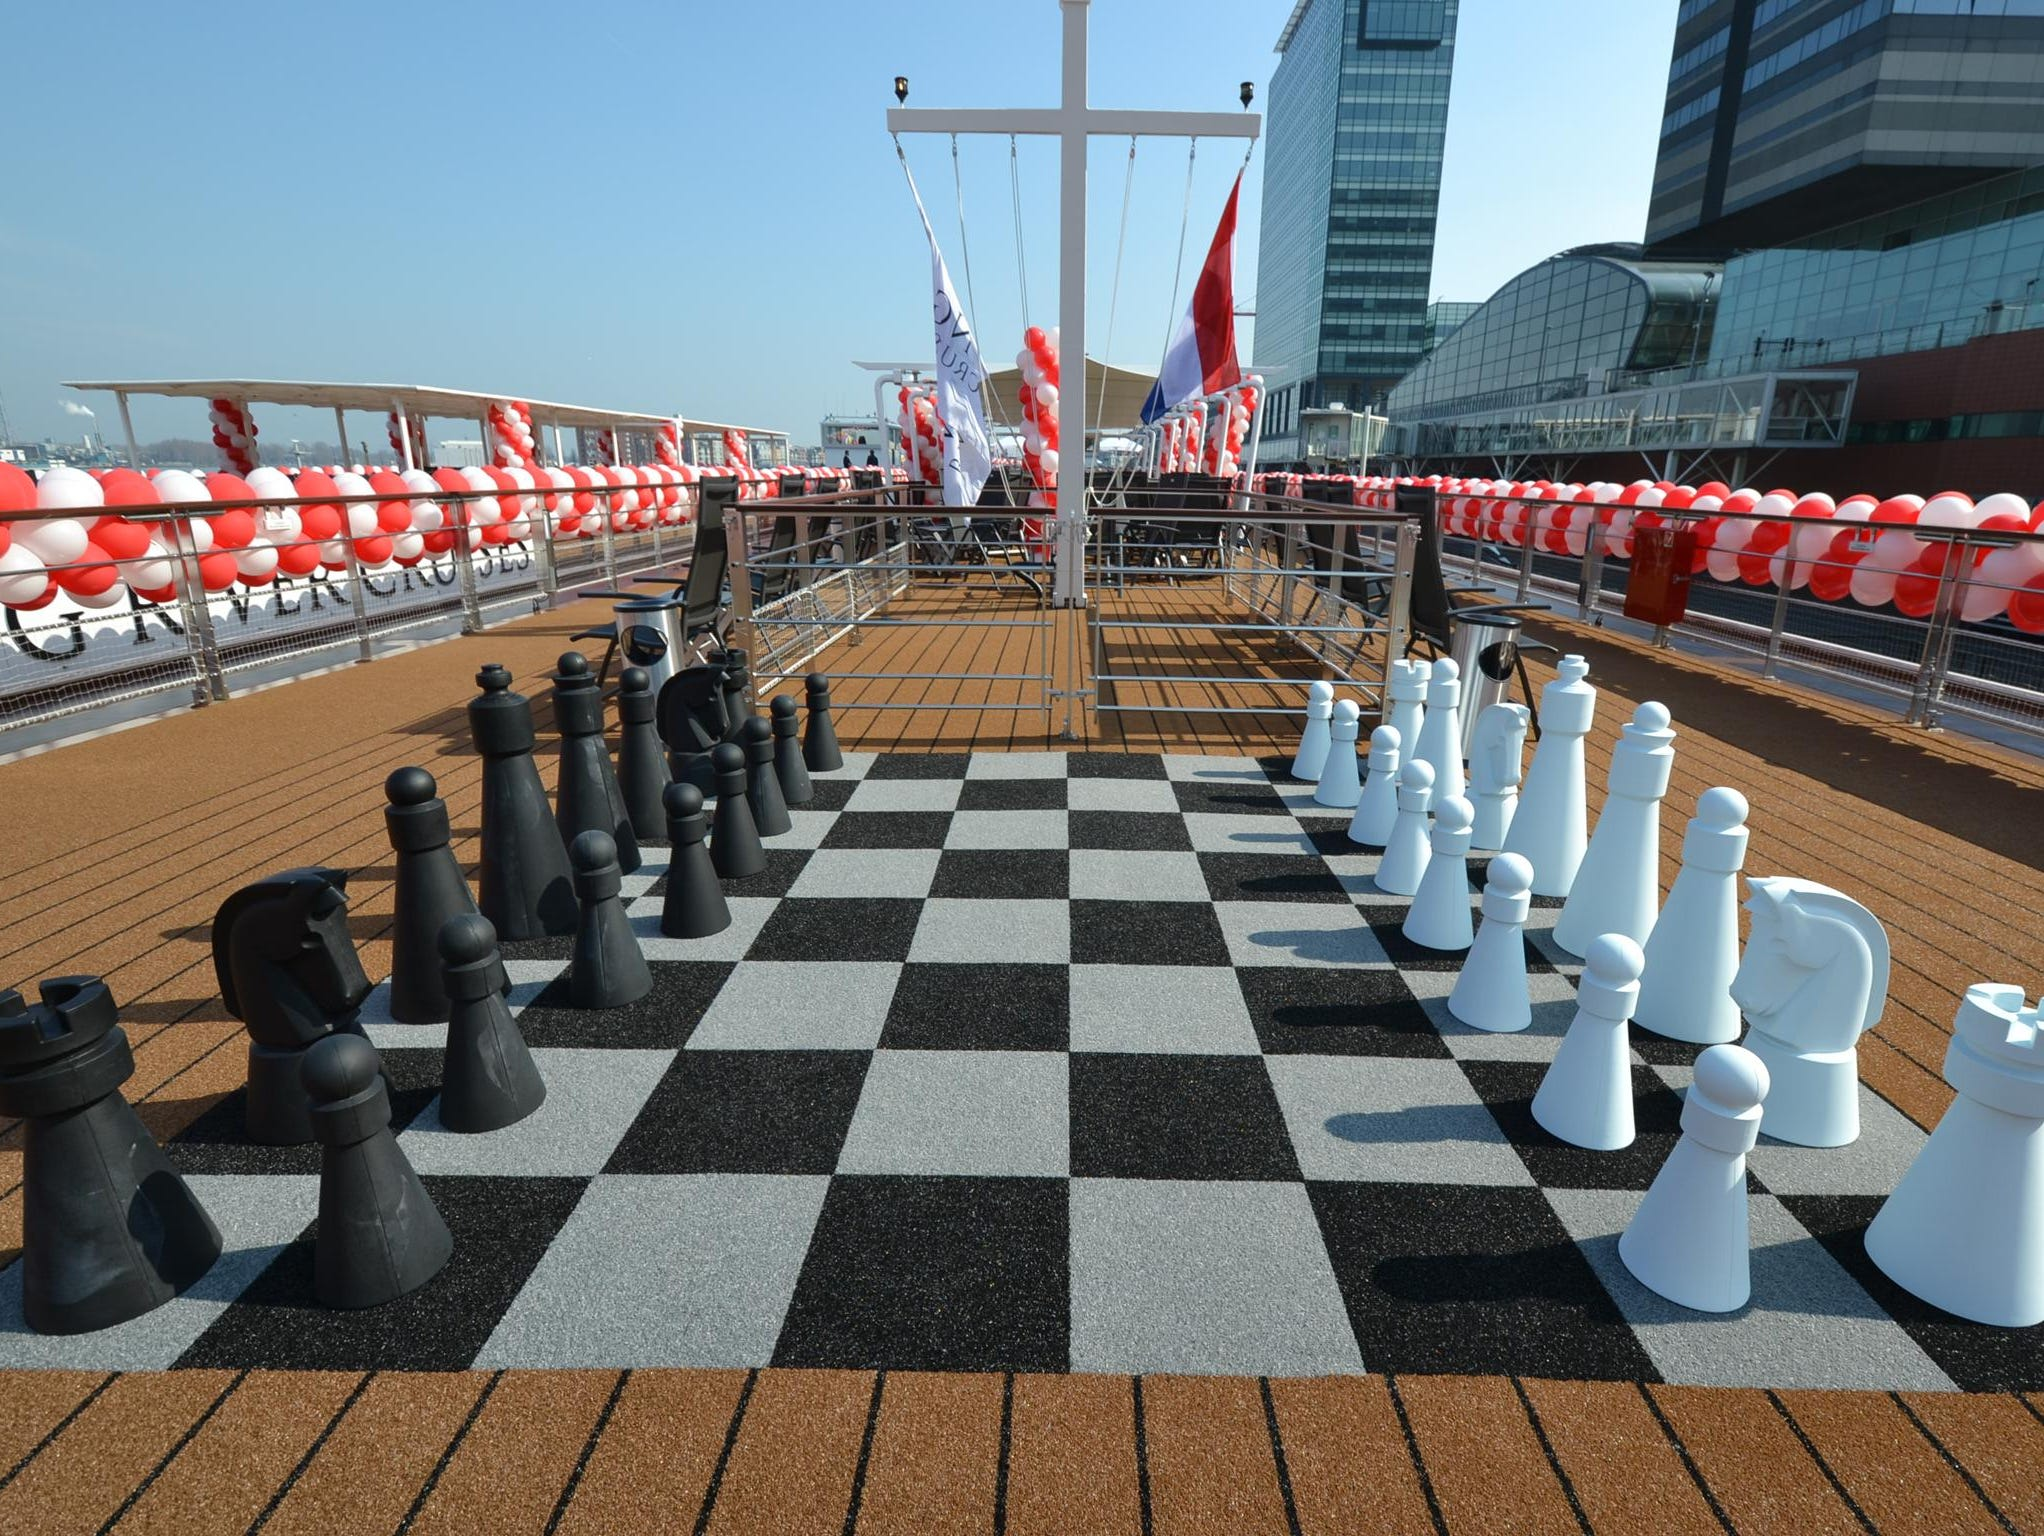 A close-up of the chess board on the Sun Deck.